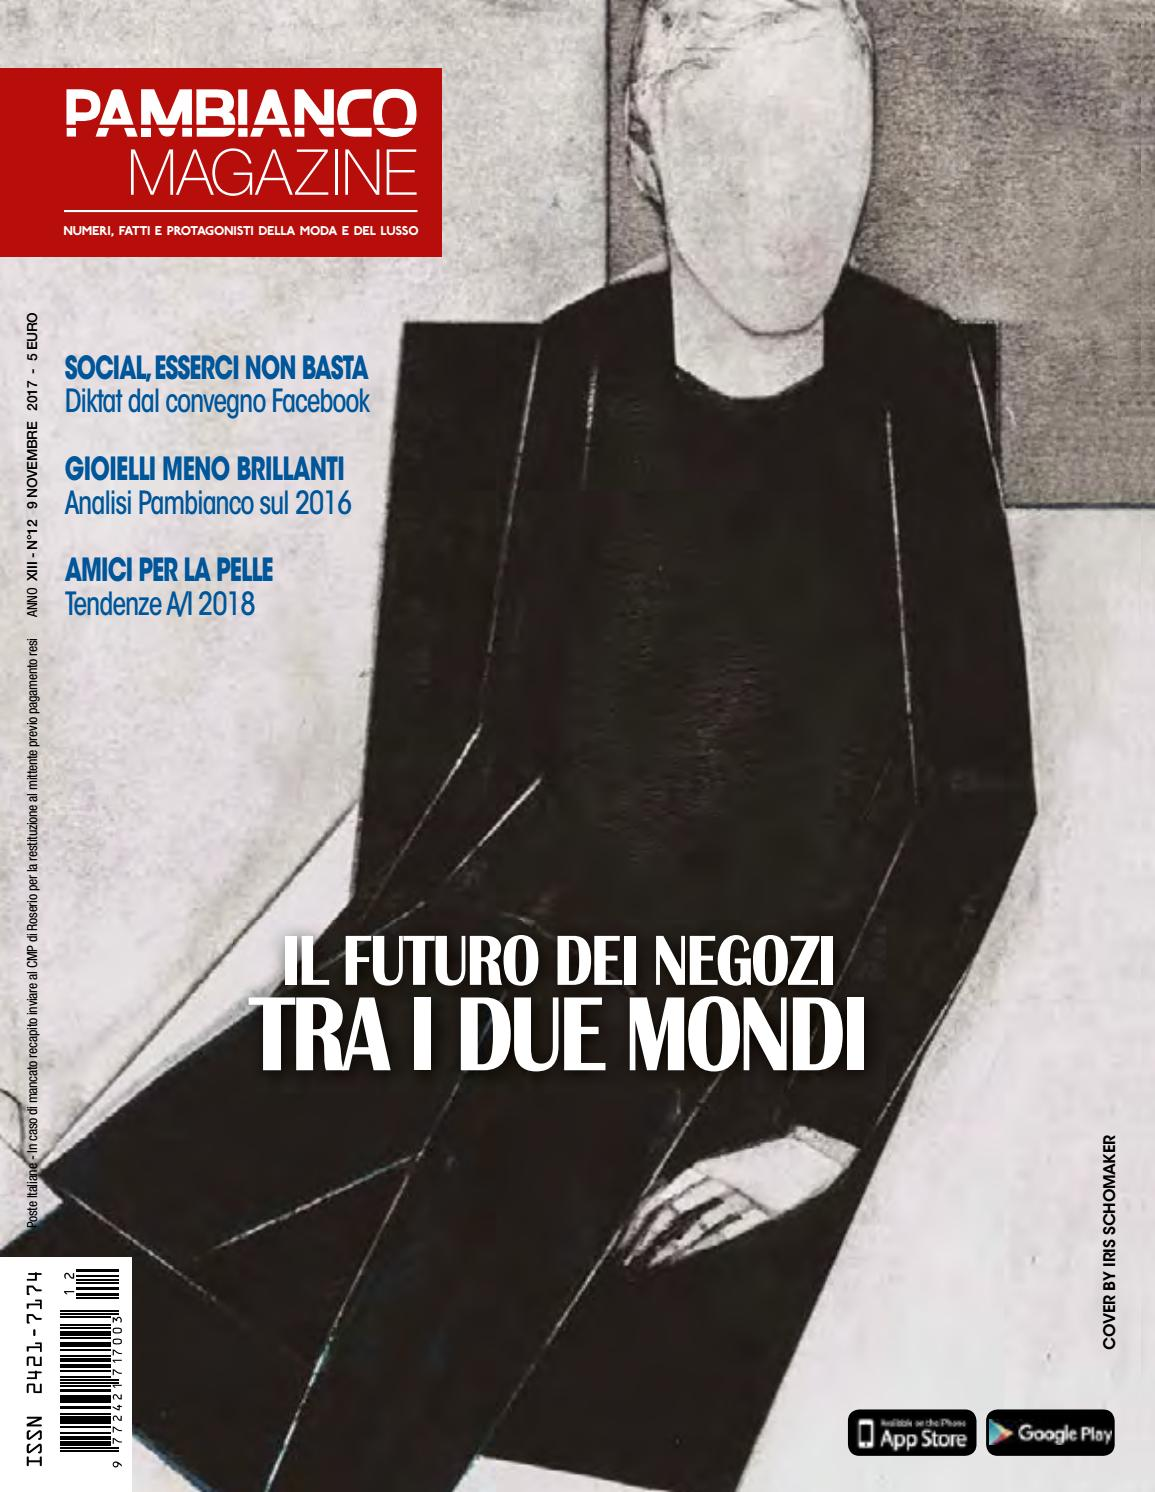 Pambianco magazine N12 XIII by Pambianconews - issuu 6a4d6c60862